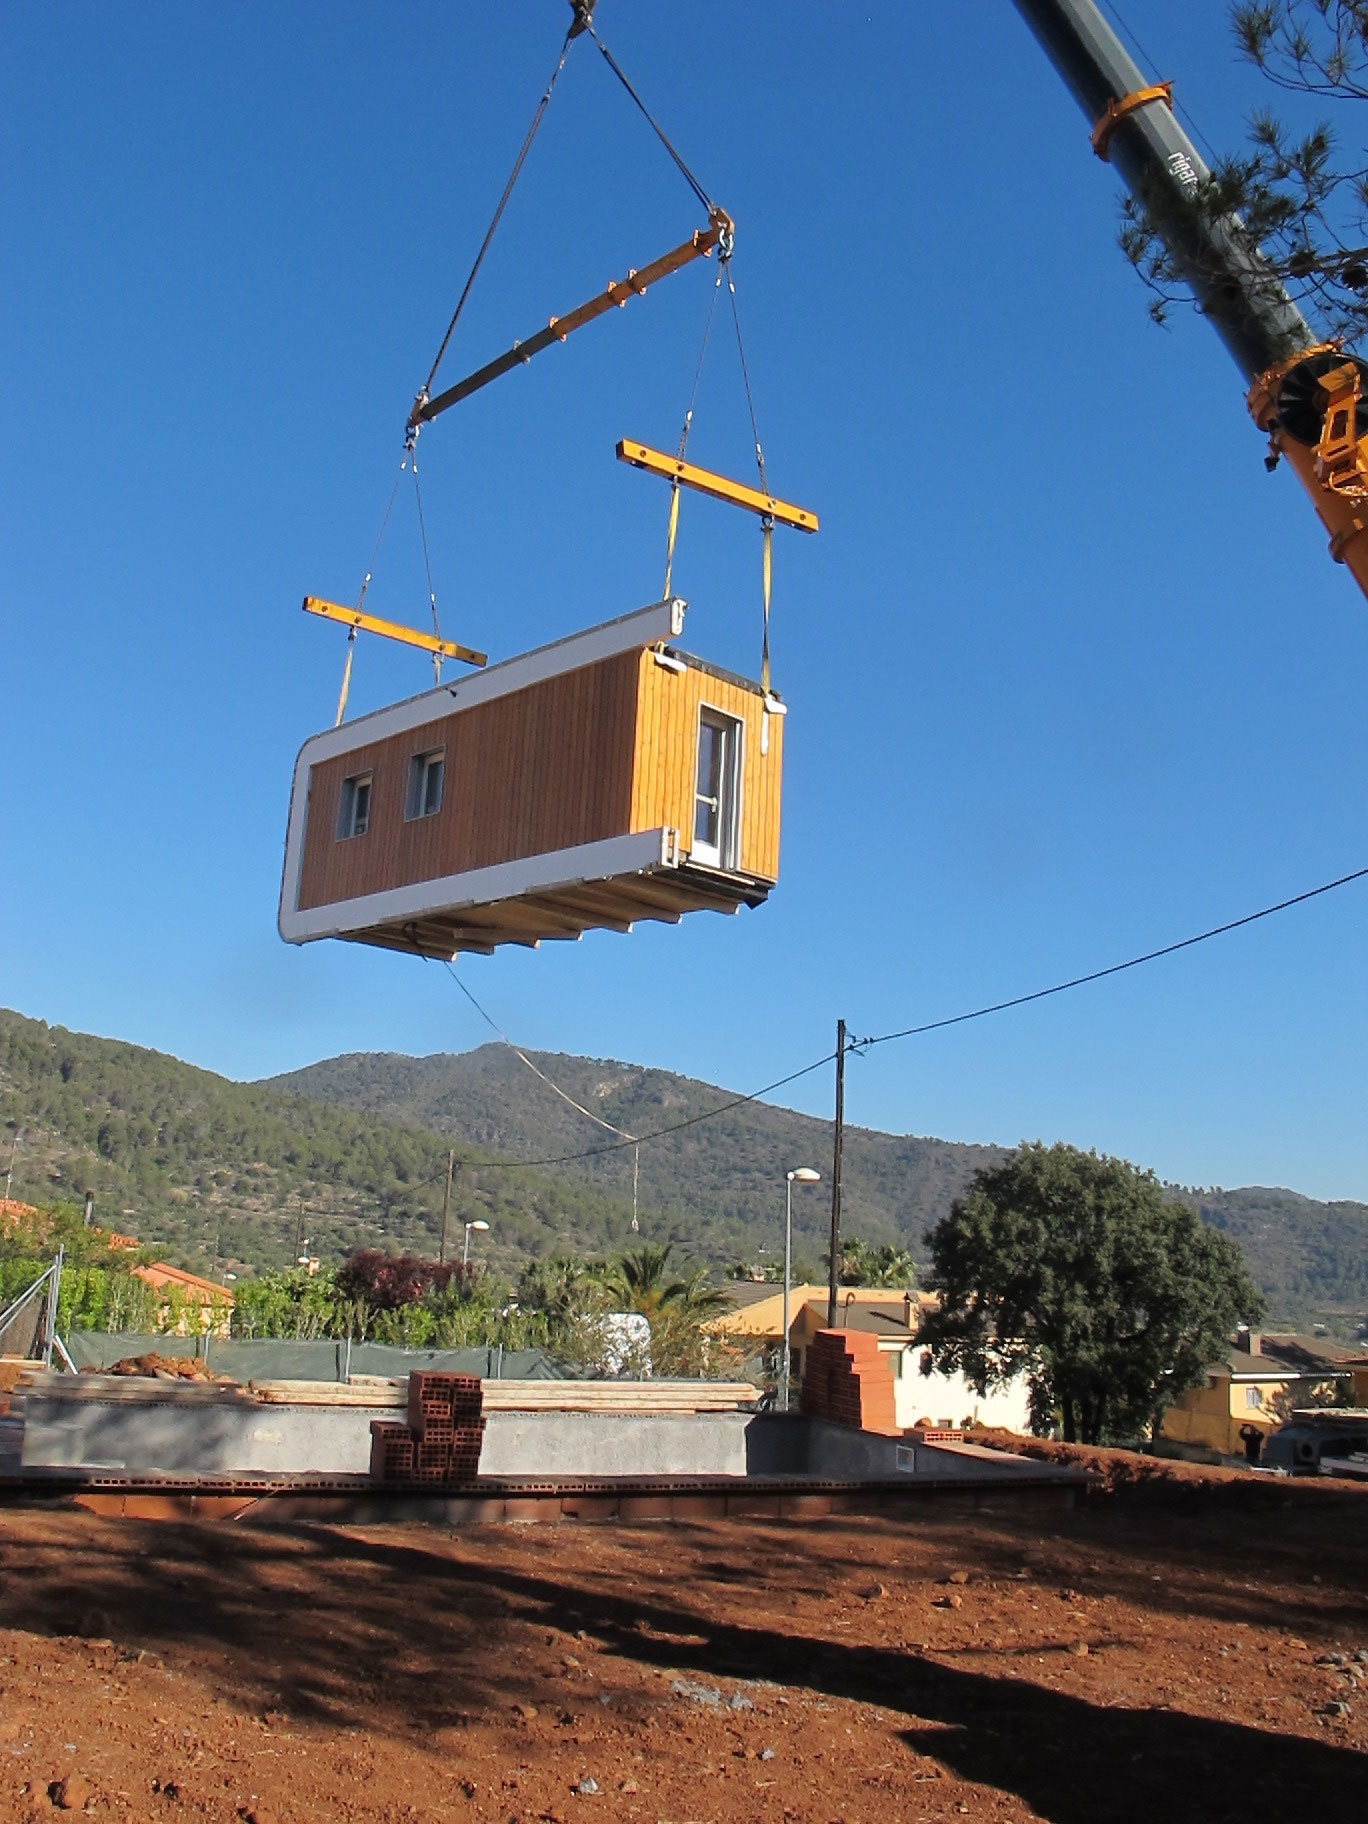 Eco-Friendly and Energy Efficiency with Mobile Device Control of El Refugio Inteligente by NOEM-01